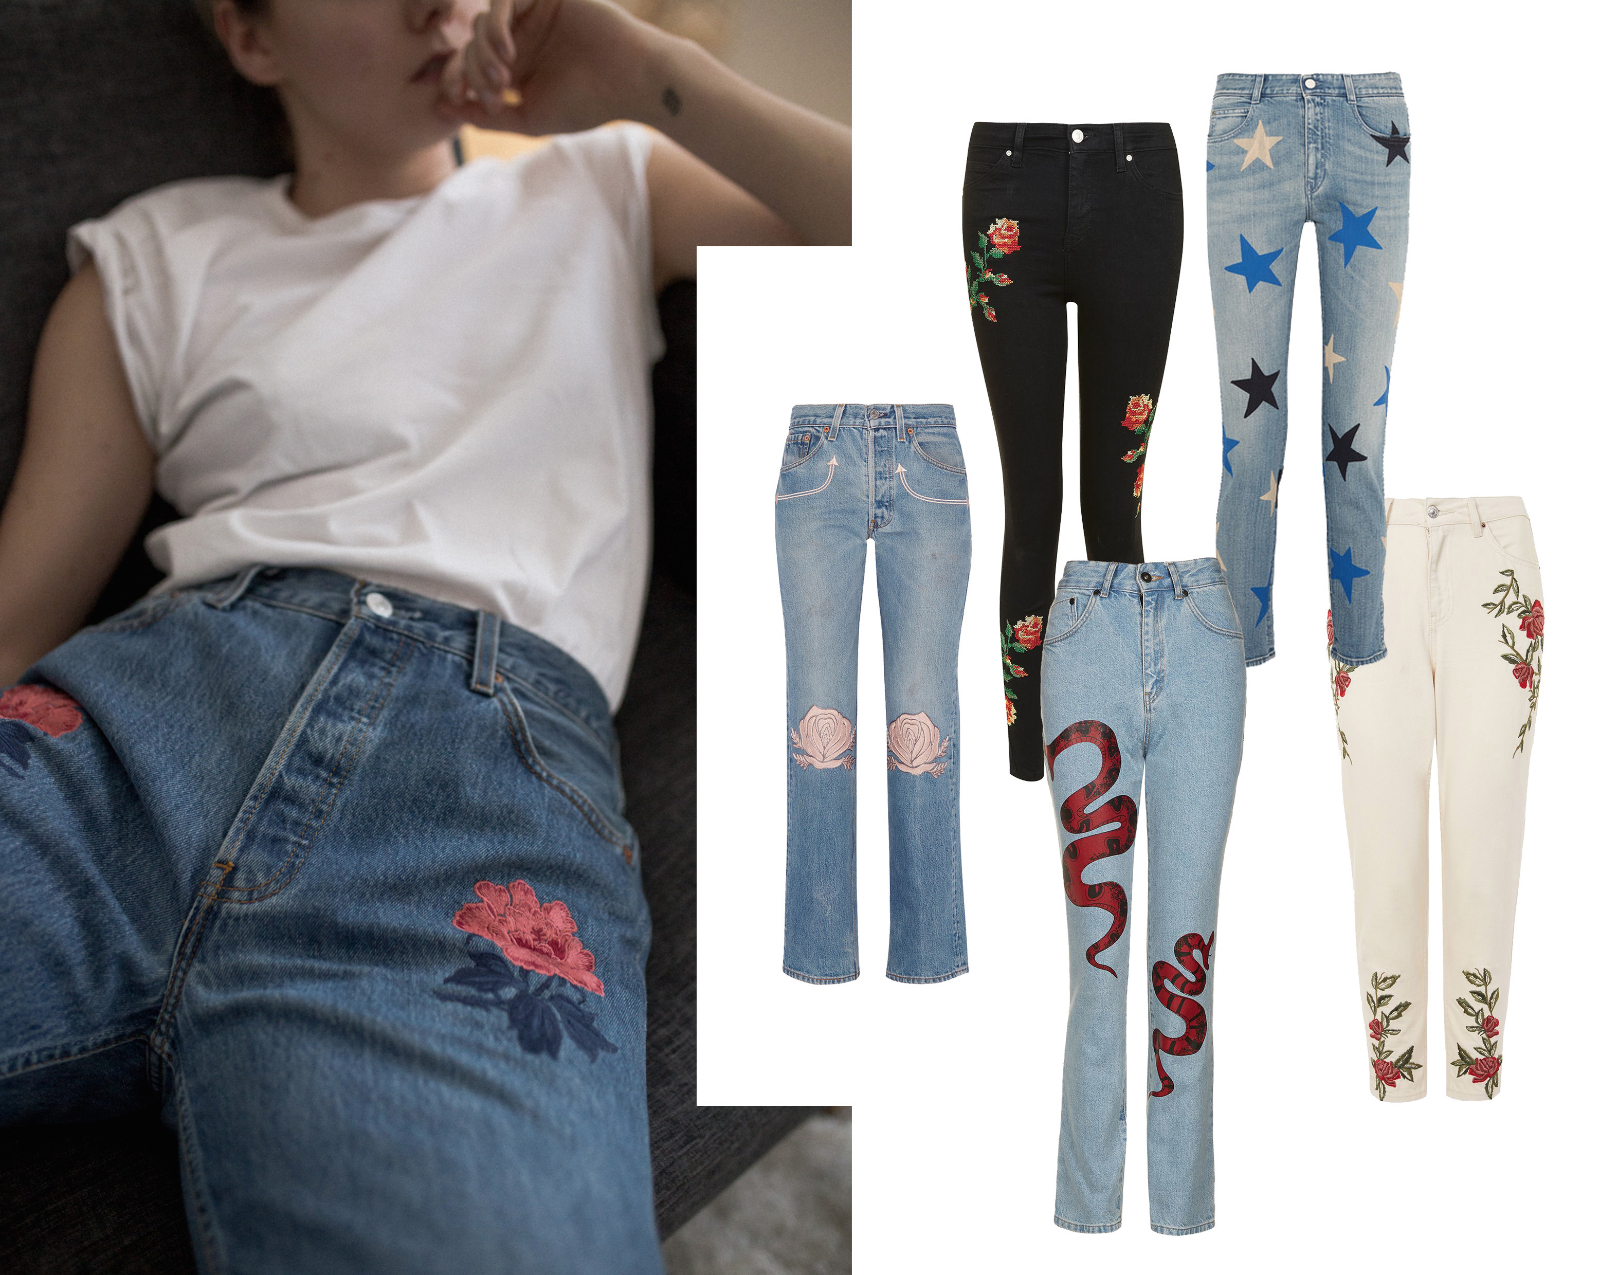 Trend_Patches_Jeans_Berlin_The-Limits-of-Control-Fashion-Fashionblogger-Blogger-Berlin-Deutschland-Modeblog-Modeblogger